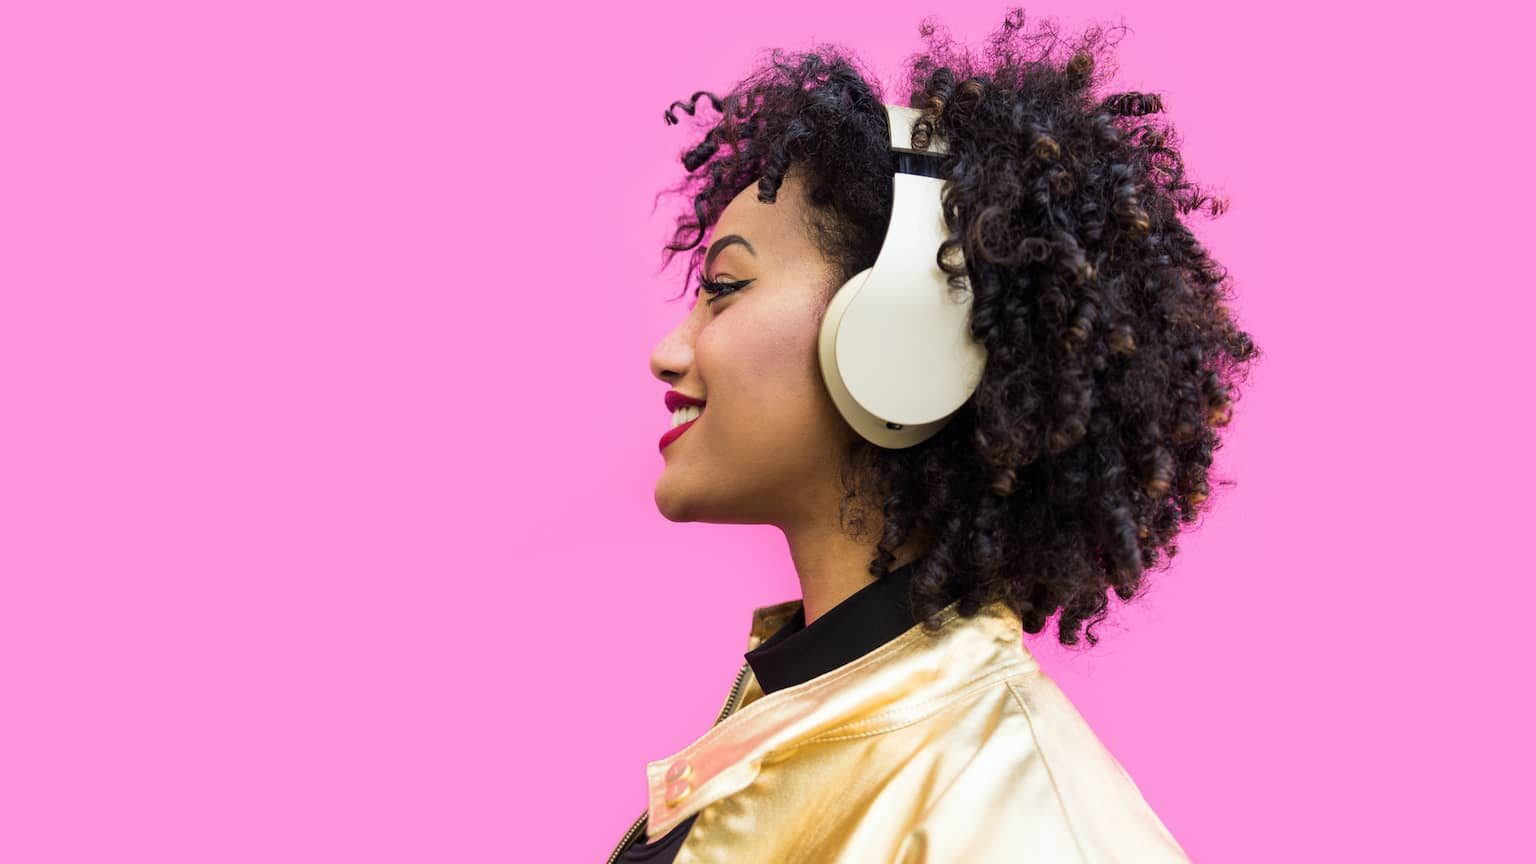 Woman wearing headphones in front of a bright pink wall